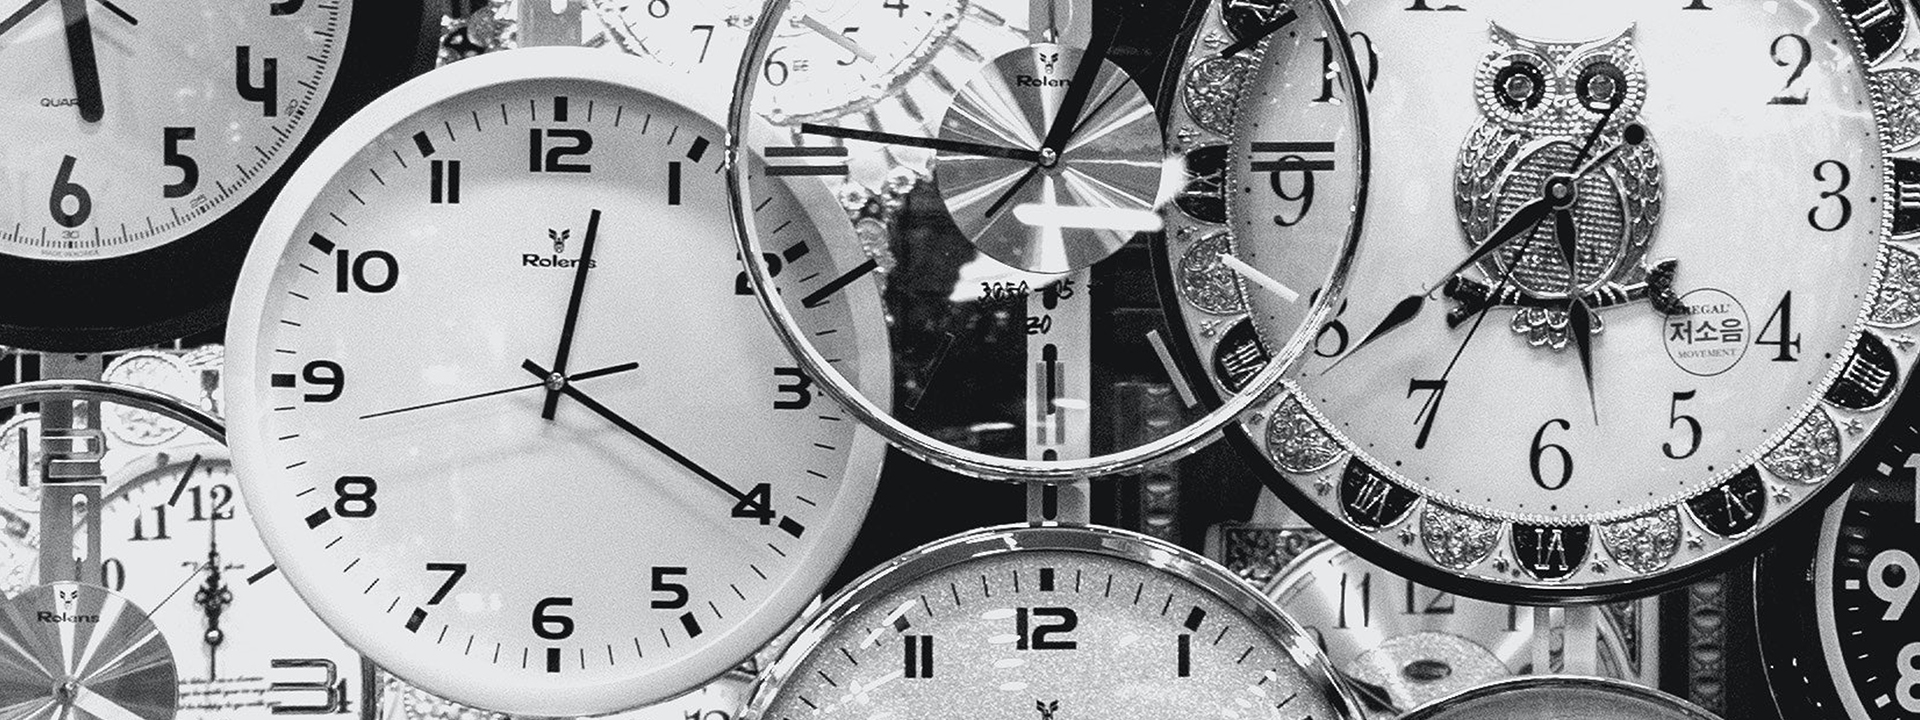 Stock photograph of multiple clocks and times